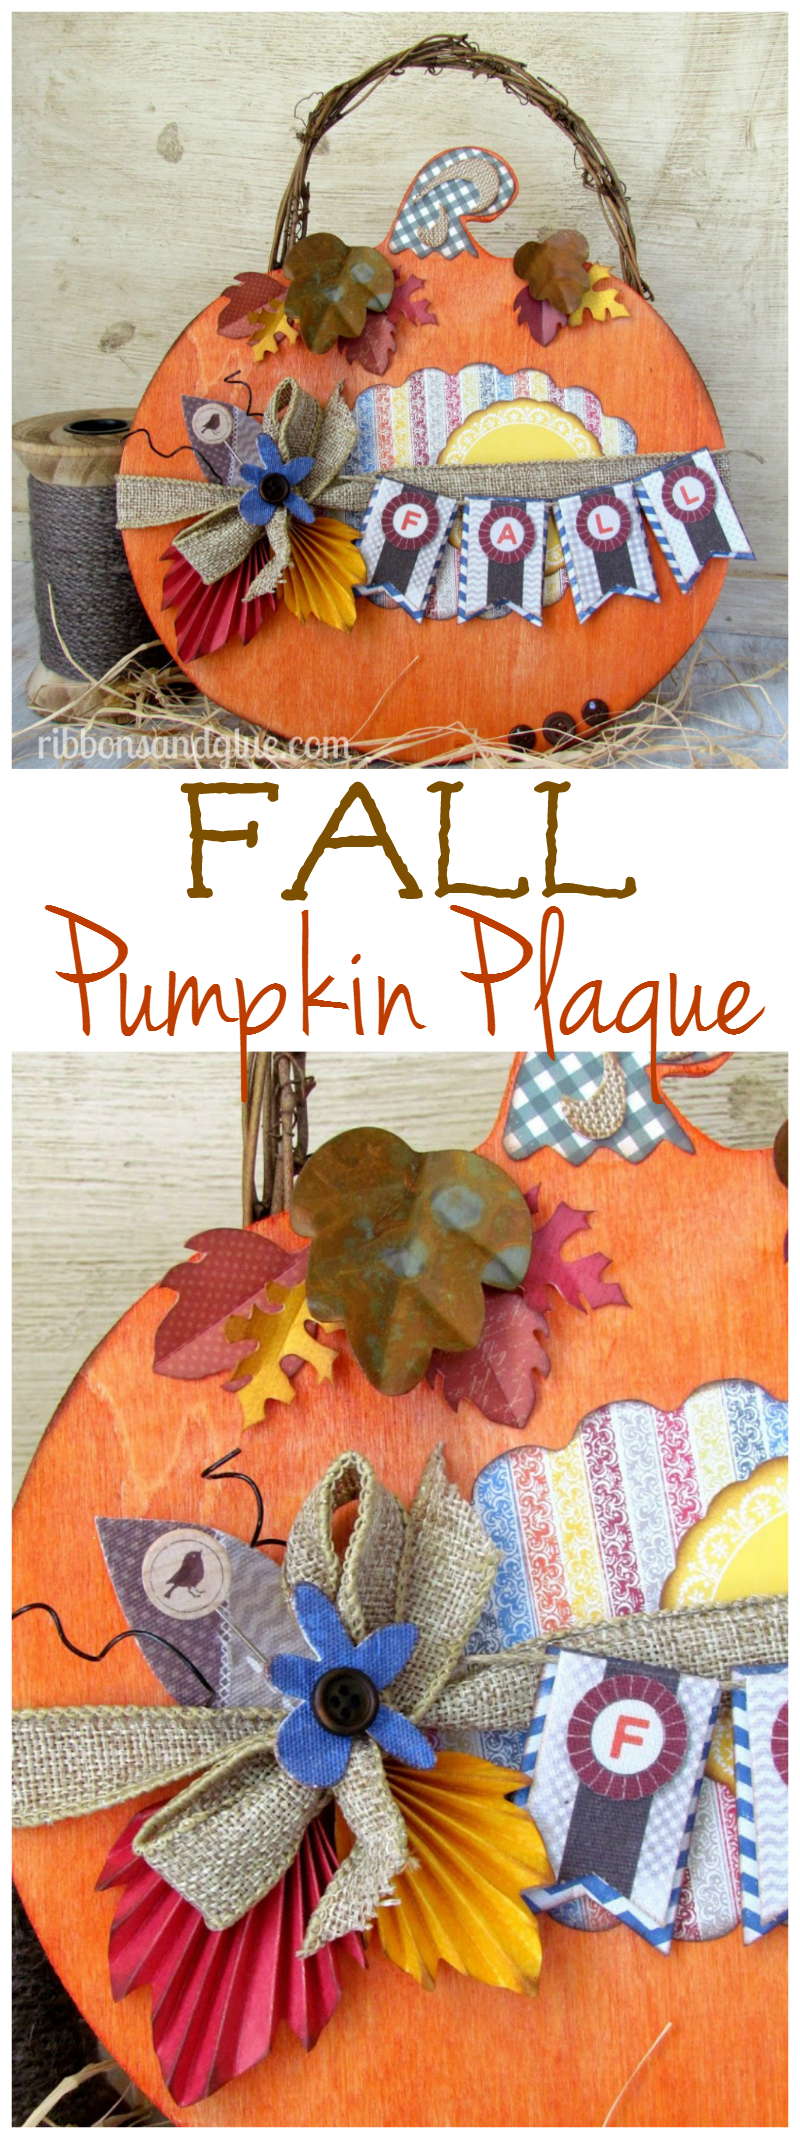 Fall Pumpkin Plaque dyed with Rit Dye and embellished with scrapbooking paper and embellishments